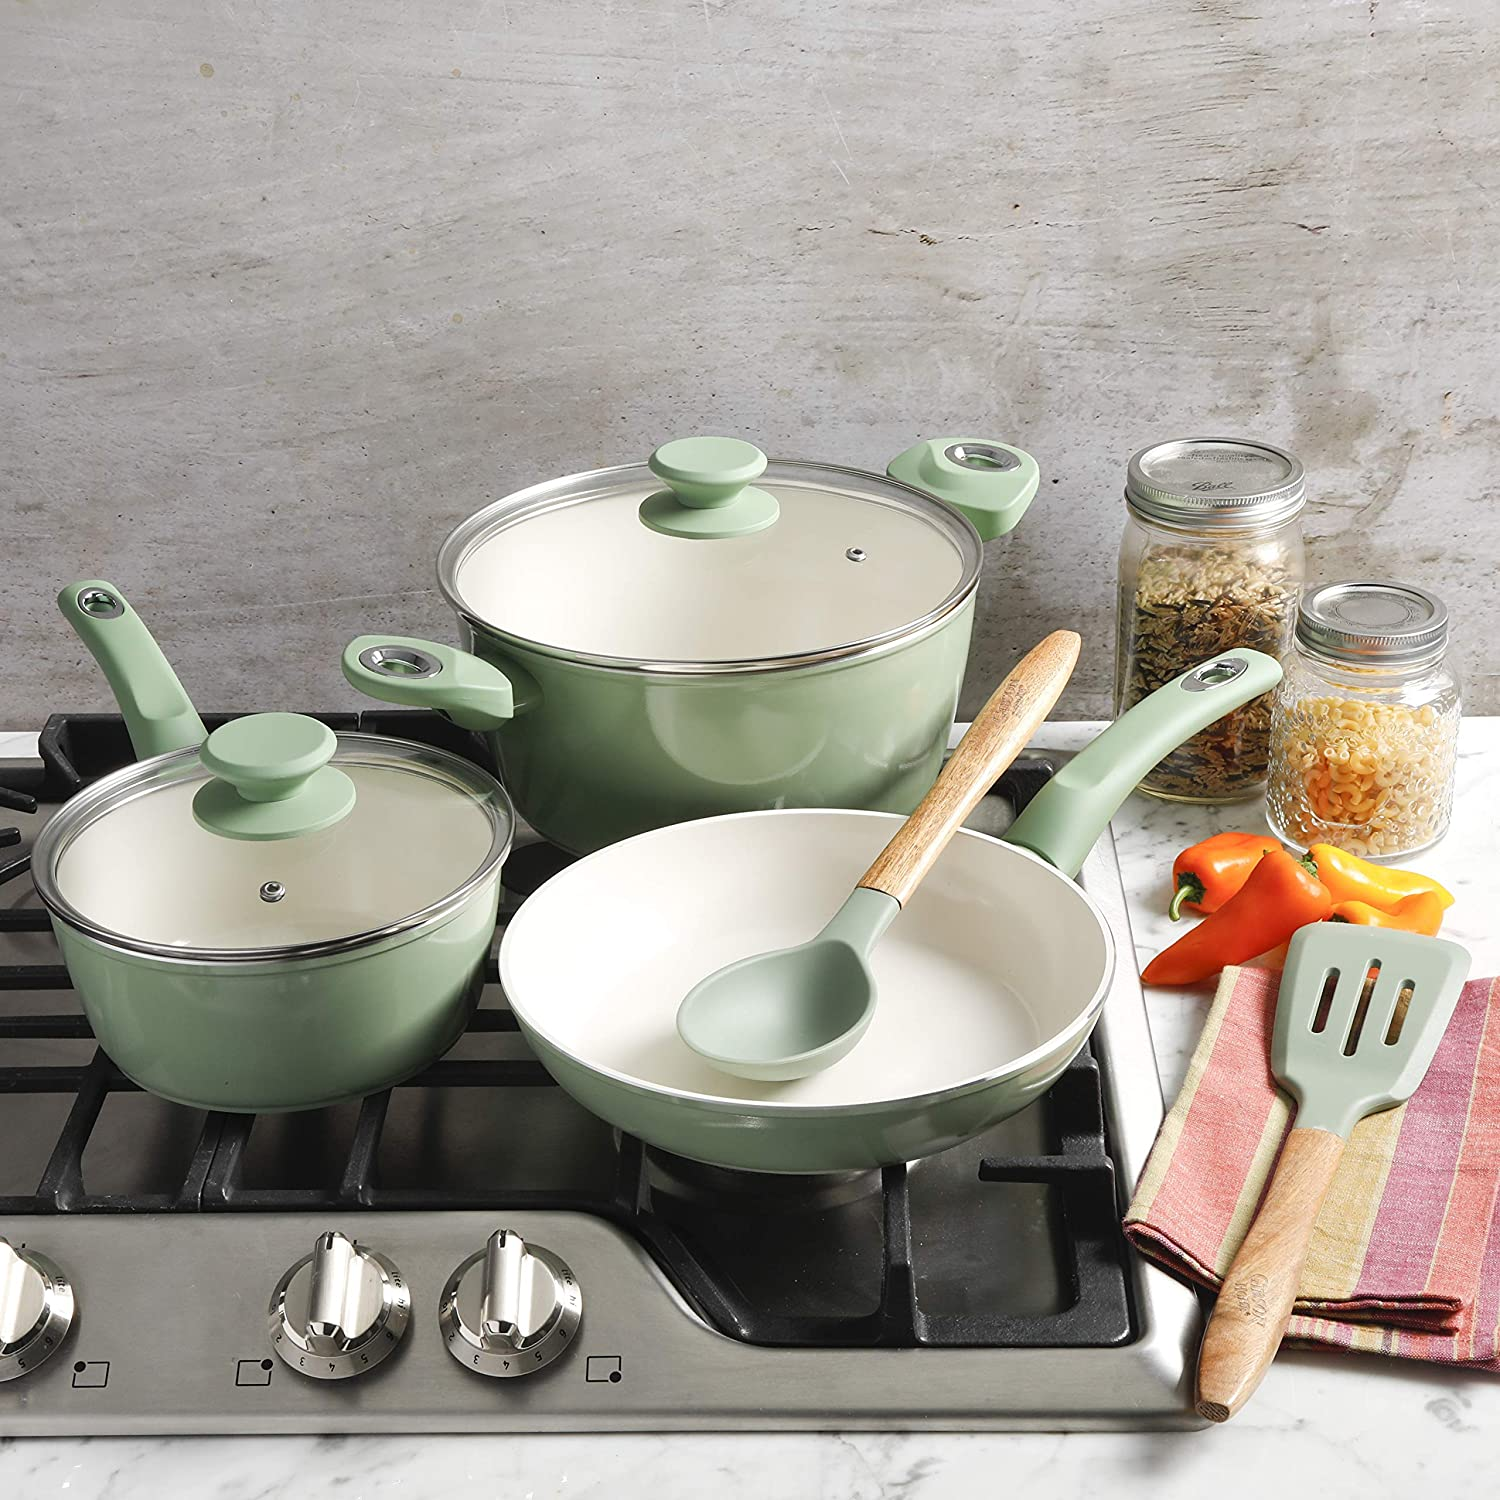 Gibson Home Plaze Café' Forged Aluminum Non-stick Ceramic Cookware with Induction Base and Soft Touch Bakelite Handle, 7-Piece Set, Mint Green